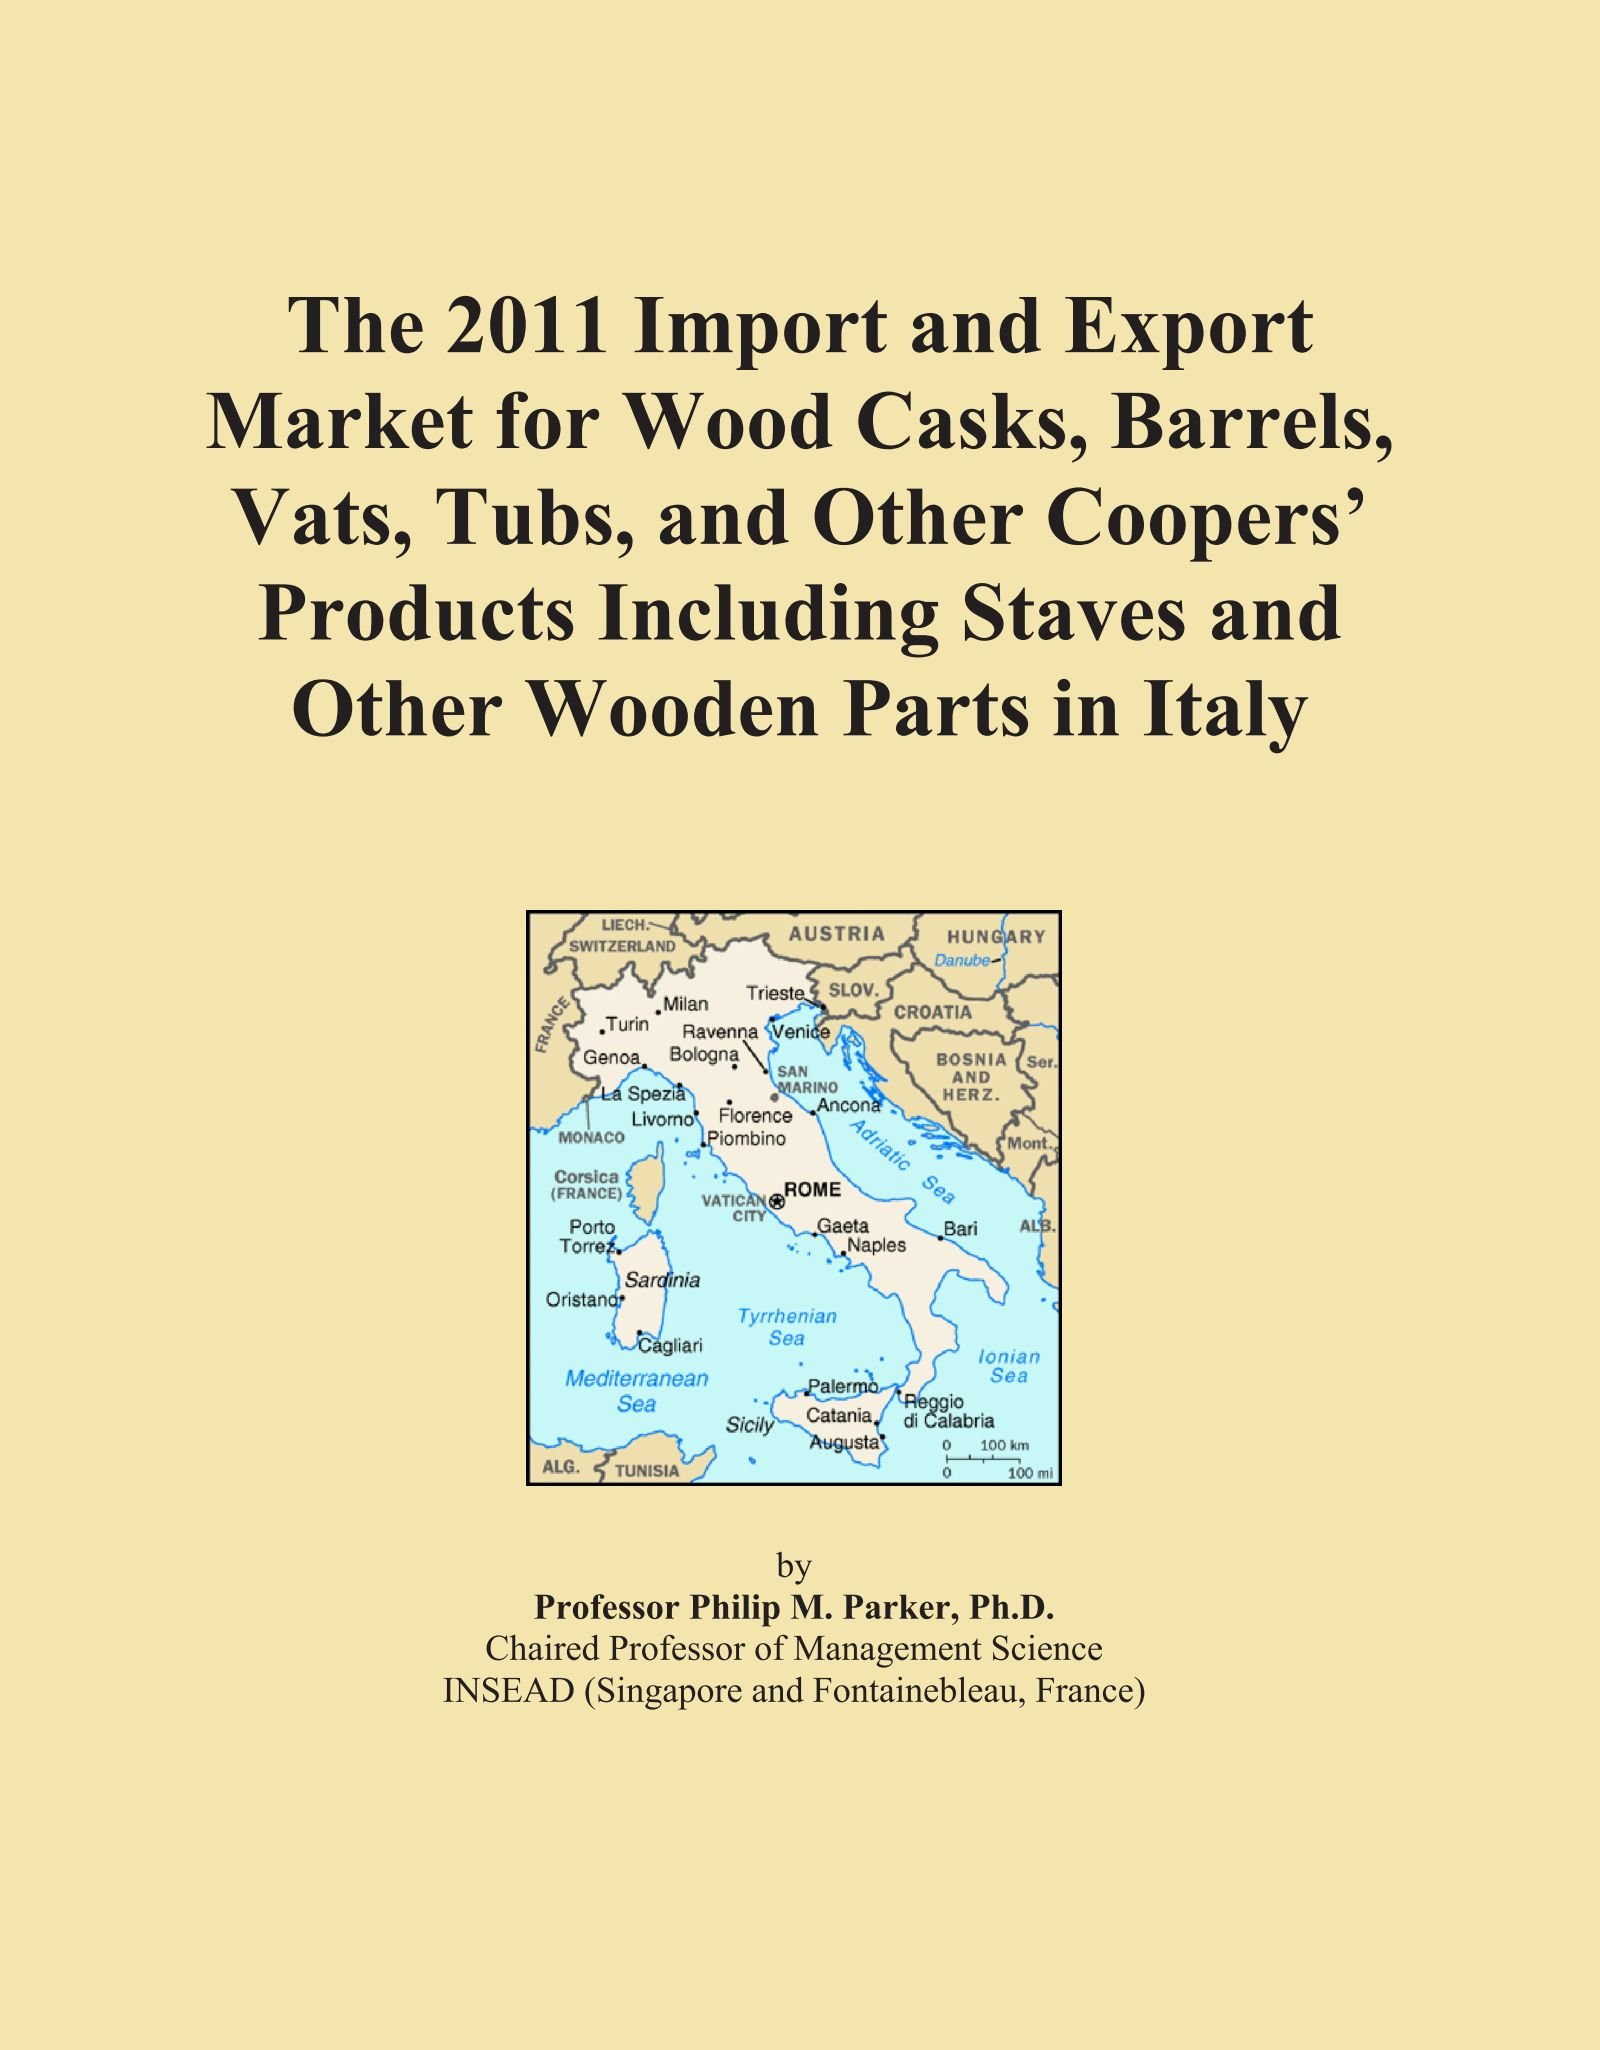 Download The 2011 Import and Export Market for Wood Casks, Barrels, Vats, Tubs, and Other Coopers' Products Including Staves and Other Wooden Parts in Italy ebook